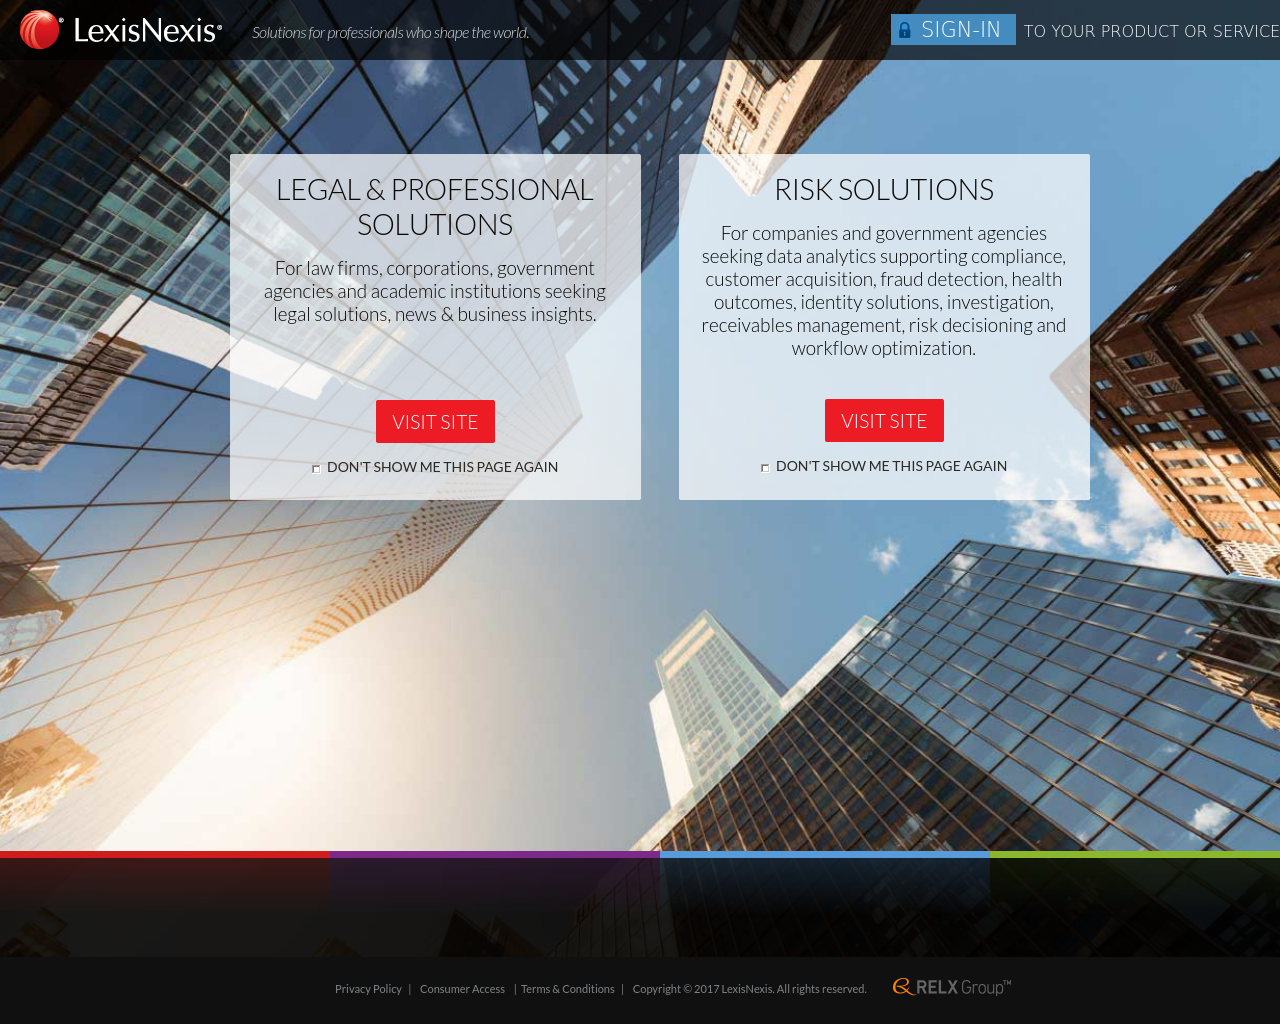 LexisNexis-Advertising-Reviews-Pricing